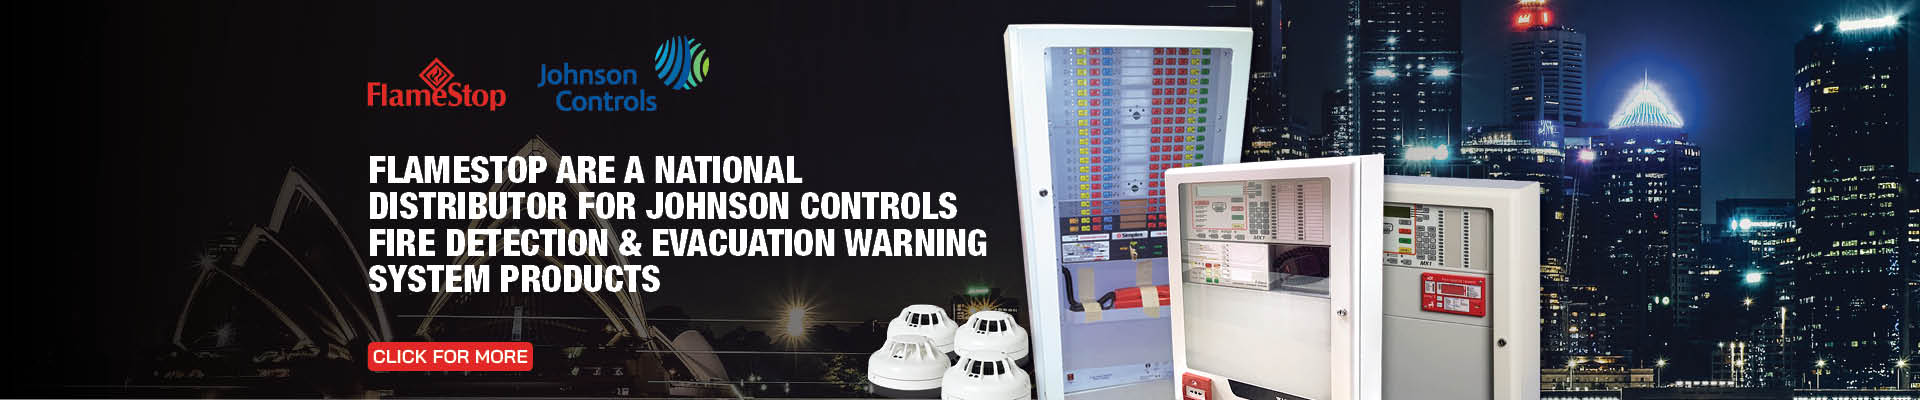 Johnson Controls Fire Detection & Evacuation Warning System Products